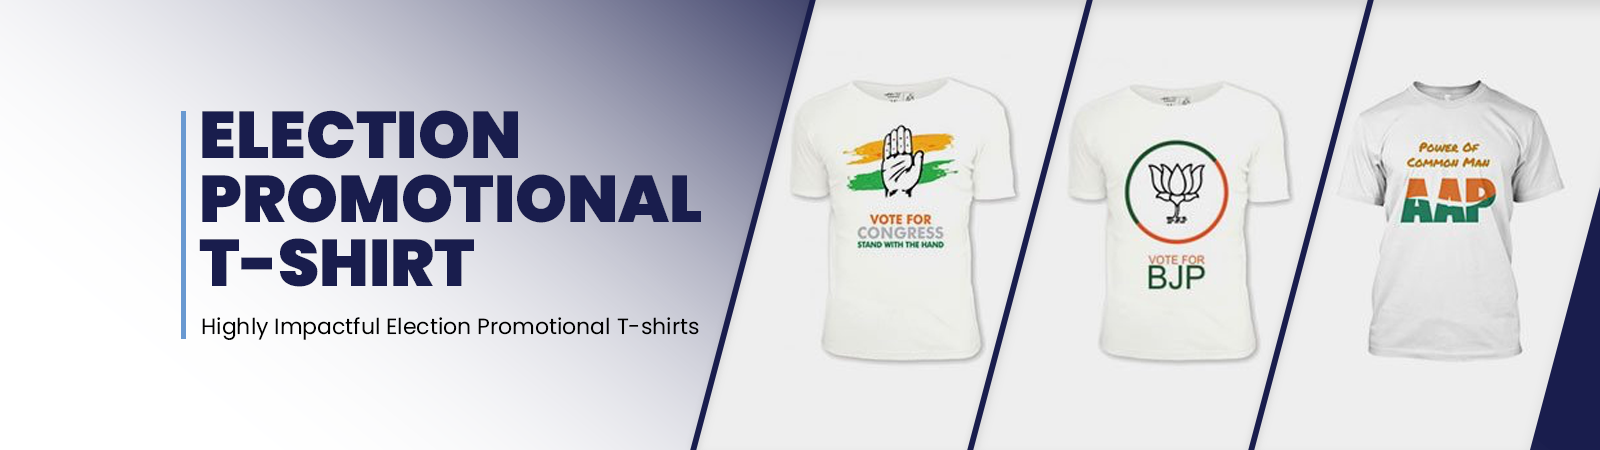 CPI Election T-Shirt